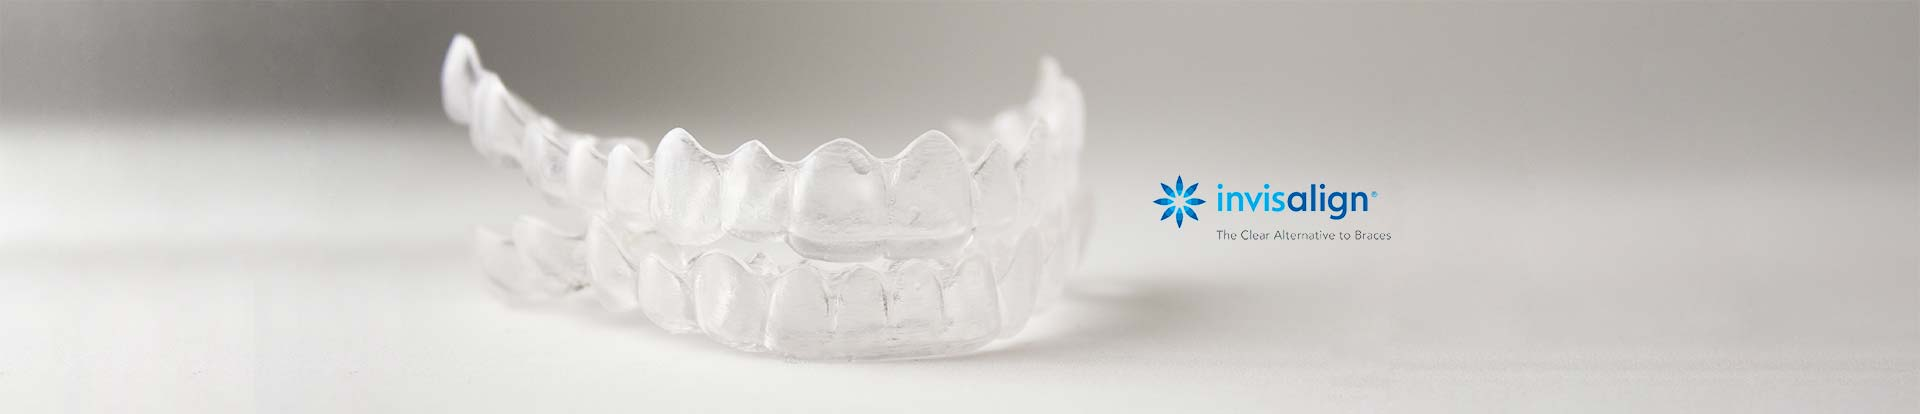 The photo of invisalign braces on the grey background.